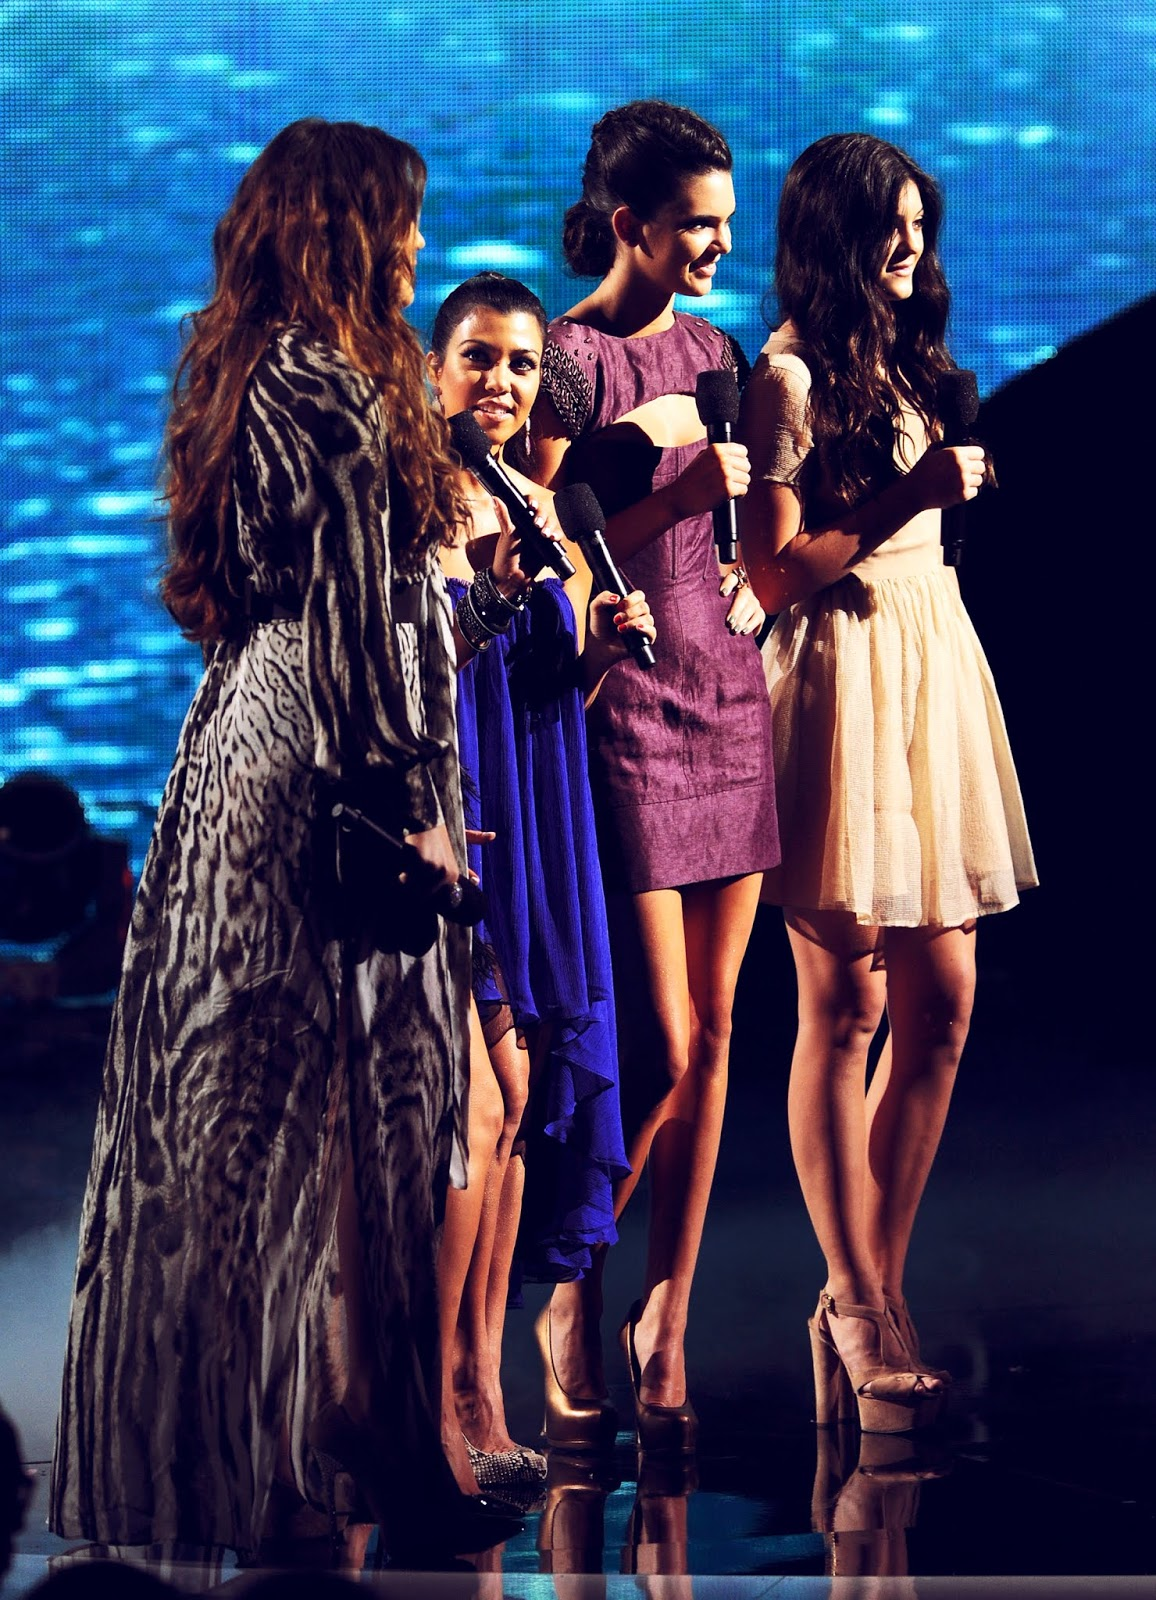 05- Teen Choice Awards in August 11, 2011